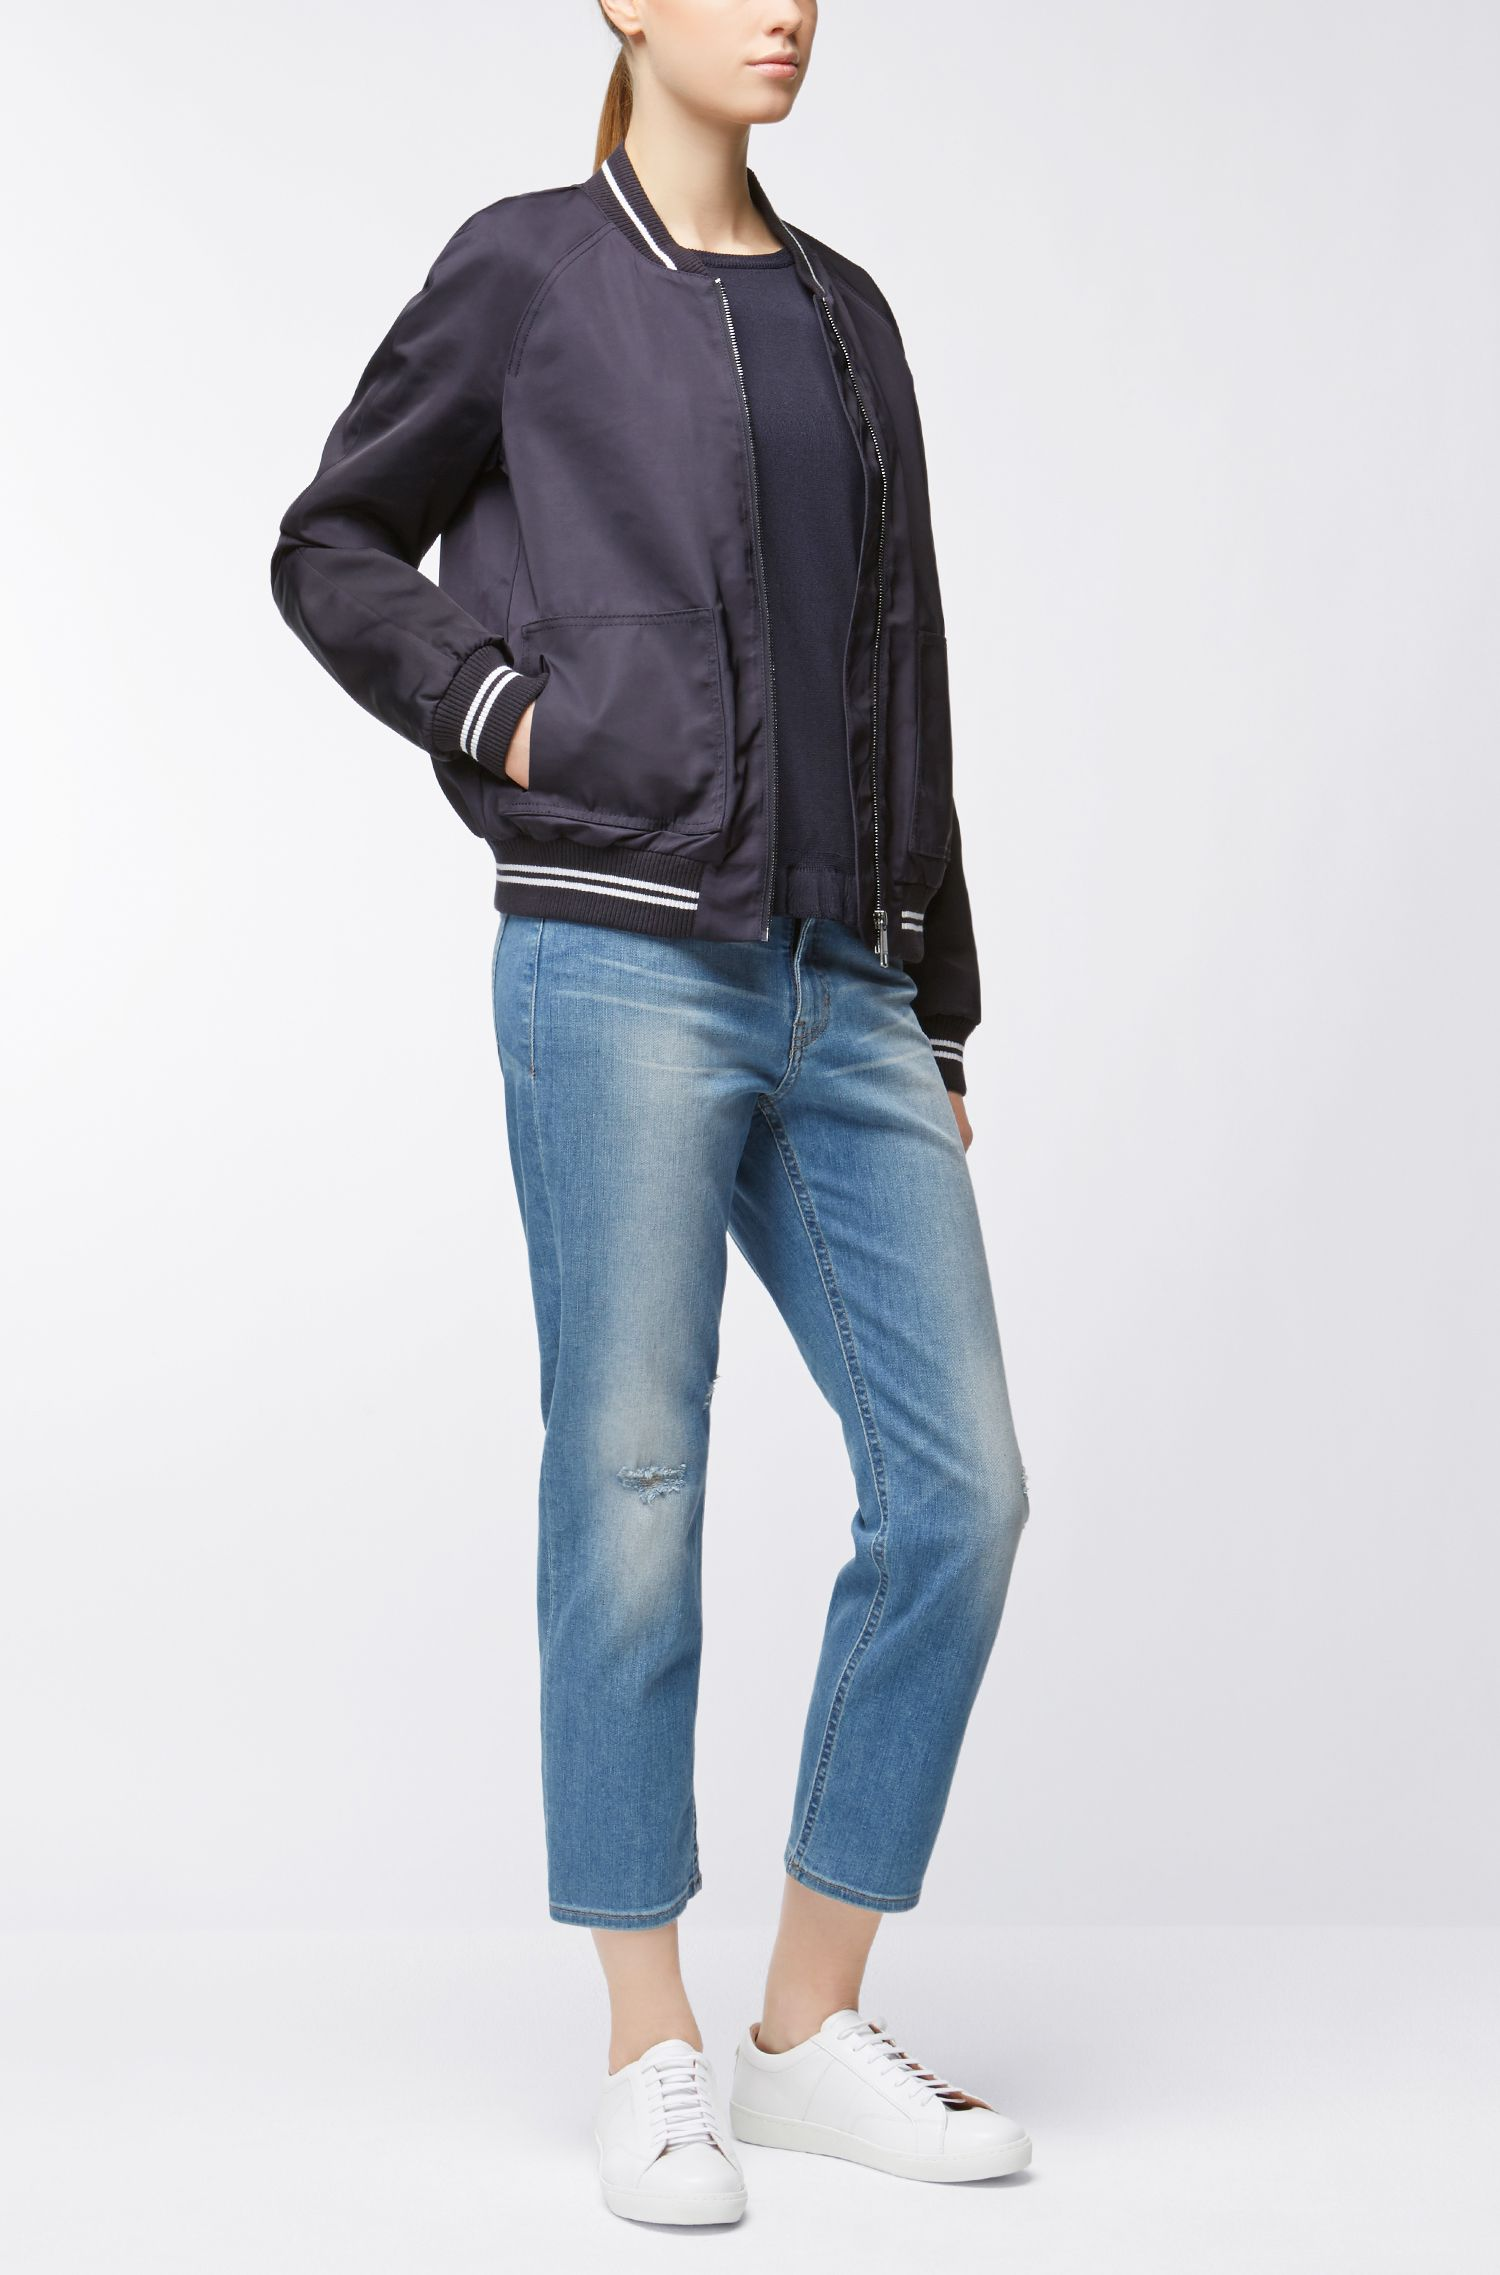 Relaxed-Fit Jeans aus komfortablem Stretch-Denim in Cropped-Länge